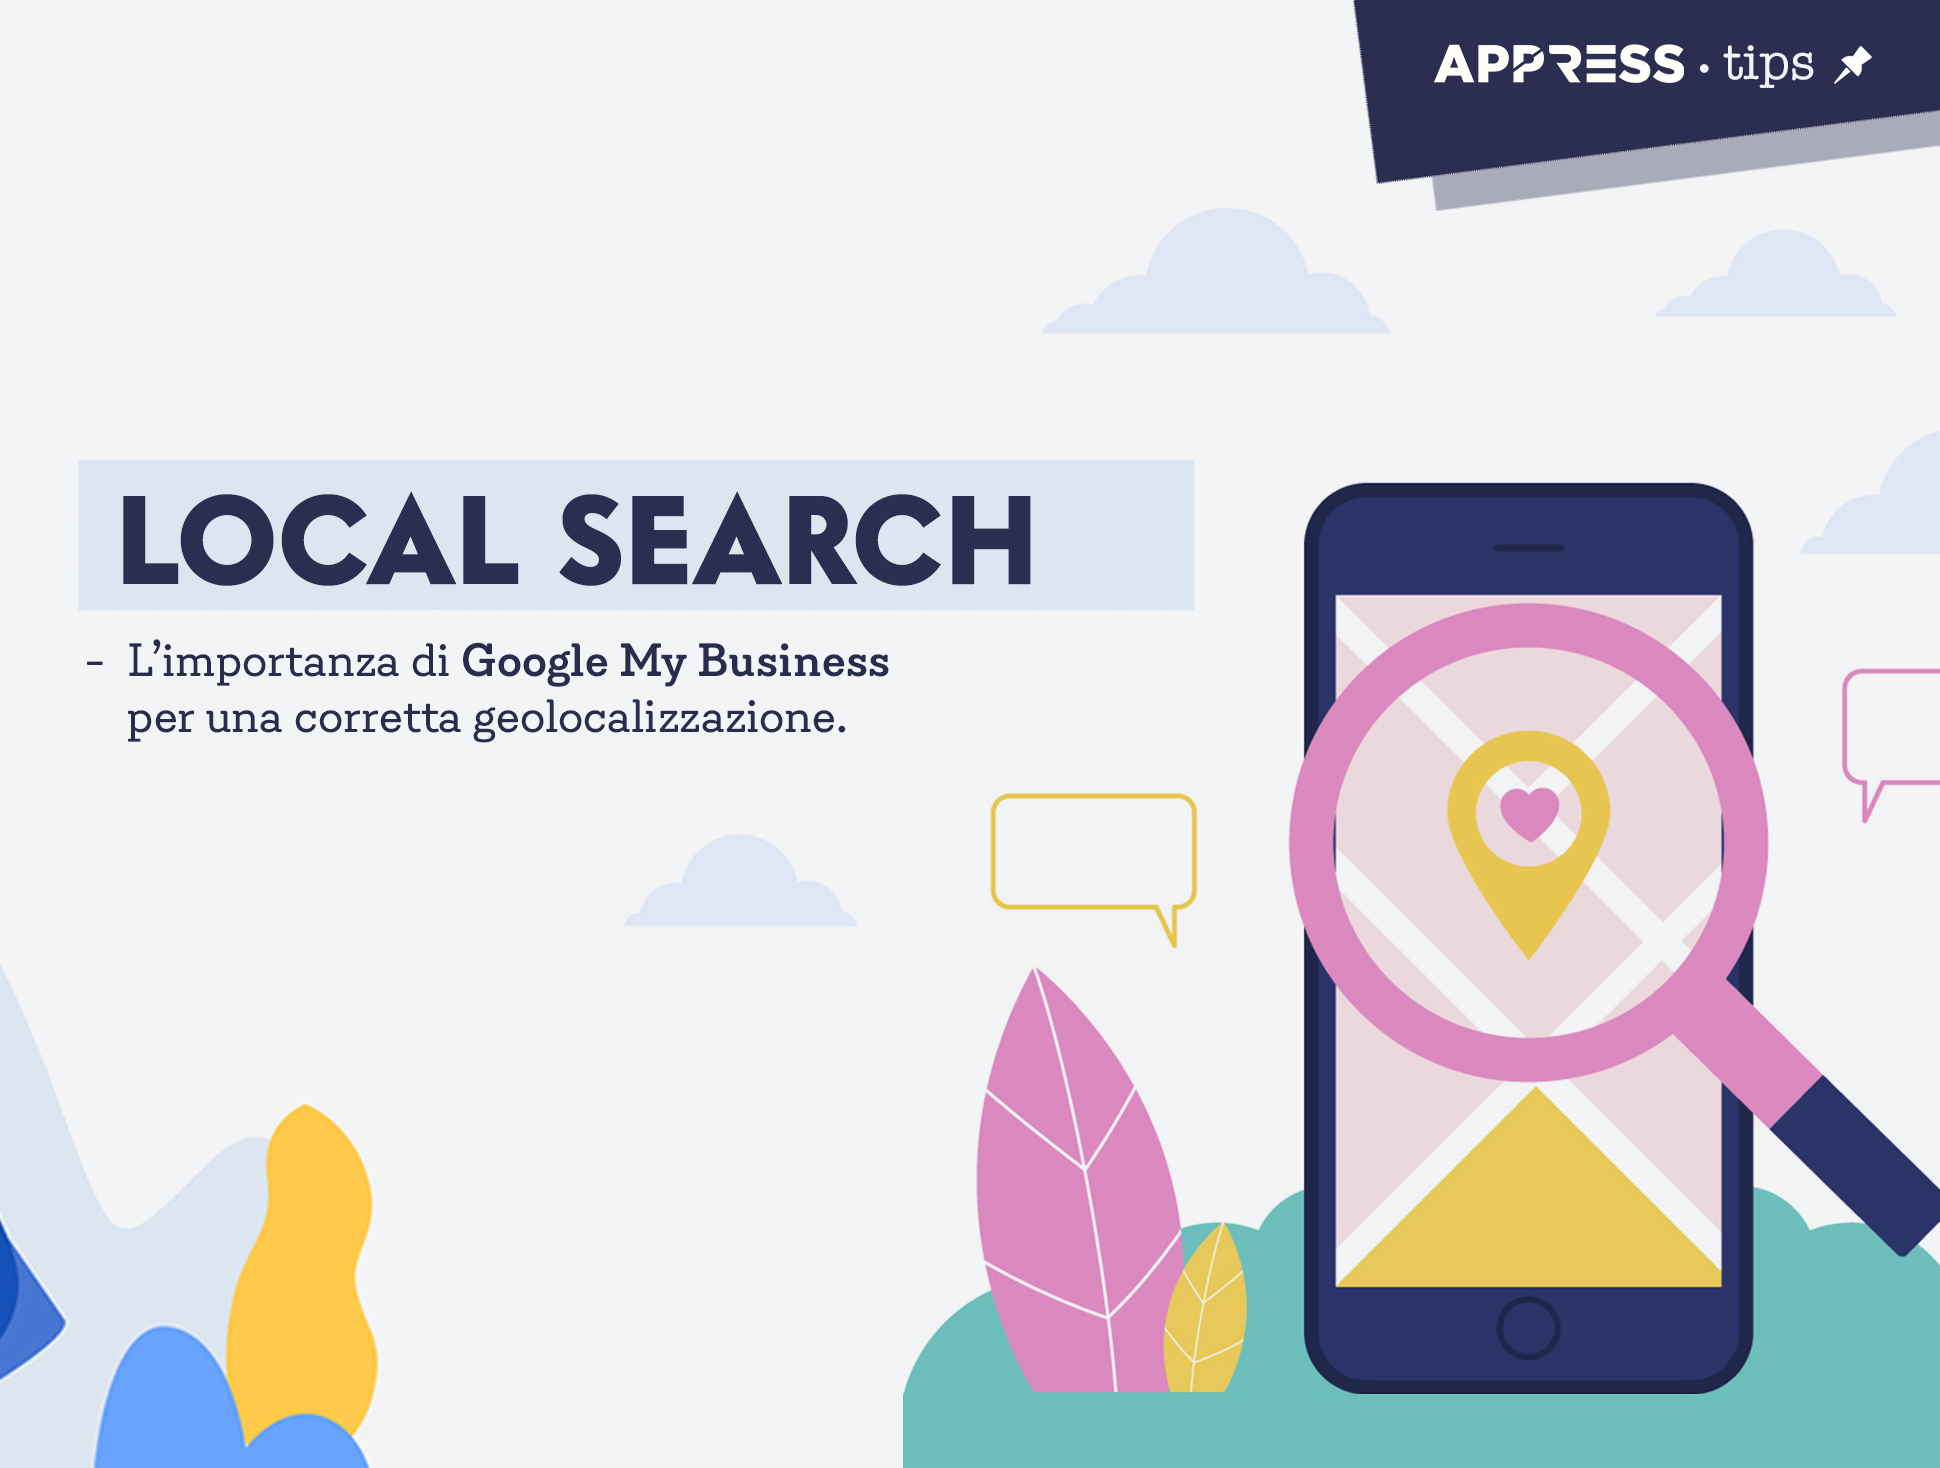 LOCAL SEARCH_Appress-tips